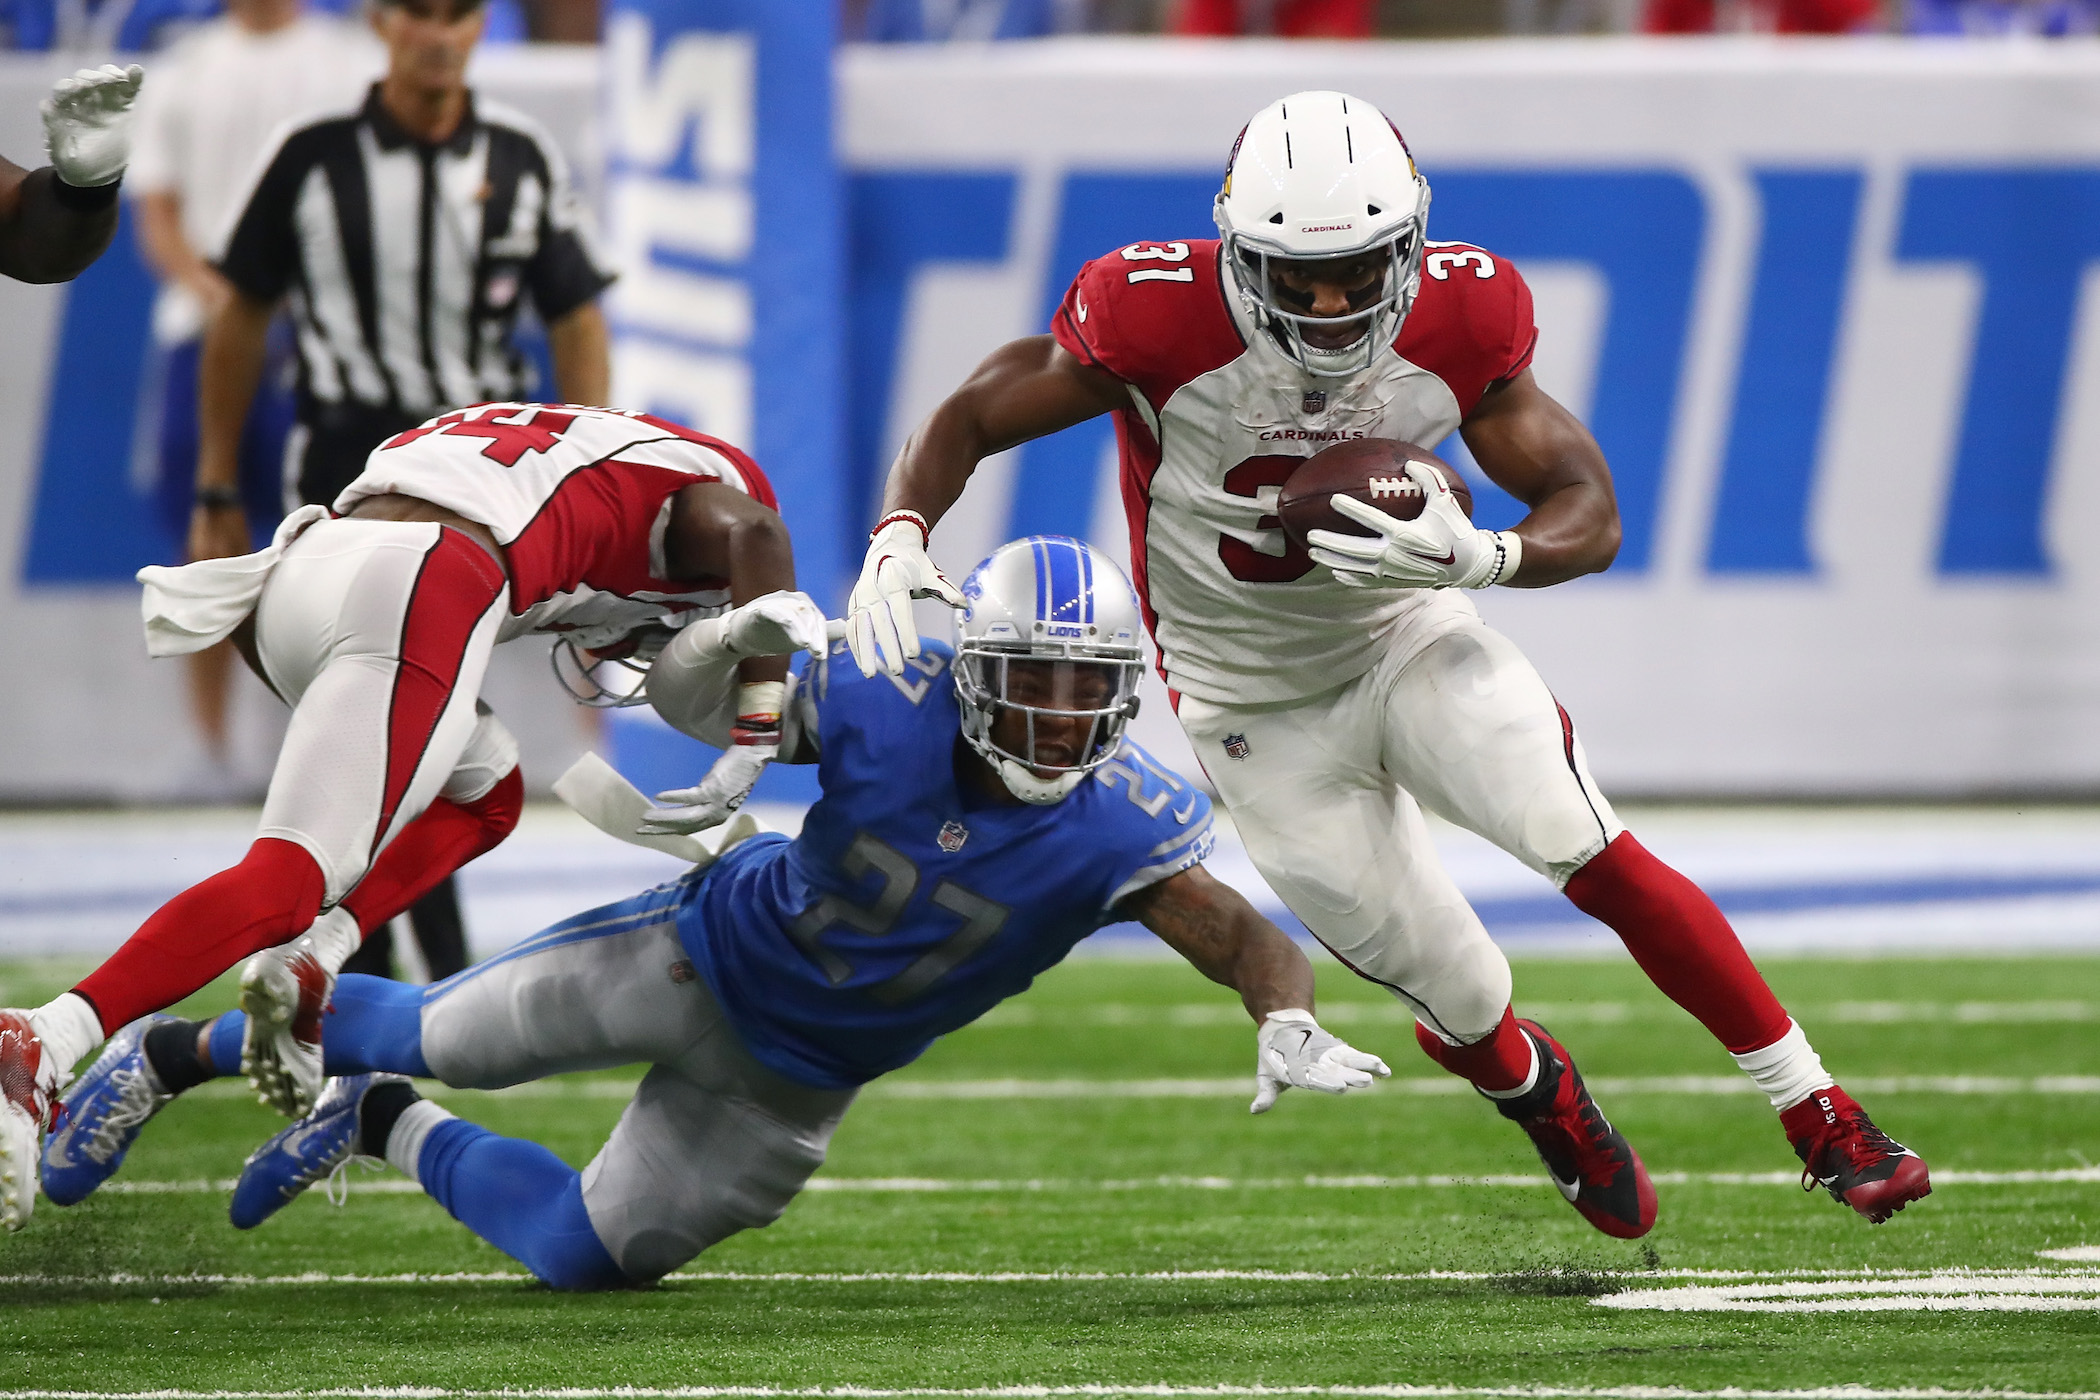 Report: Cardinals' David Johnson Could Miss 'Half the Season' With Sprained Wrist